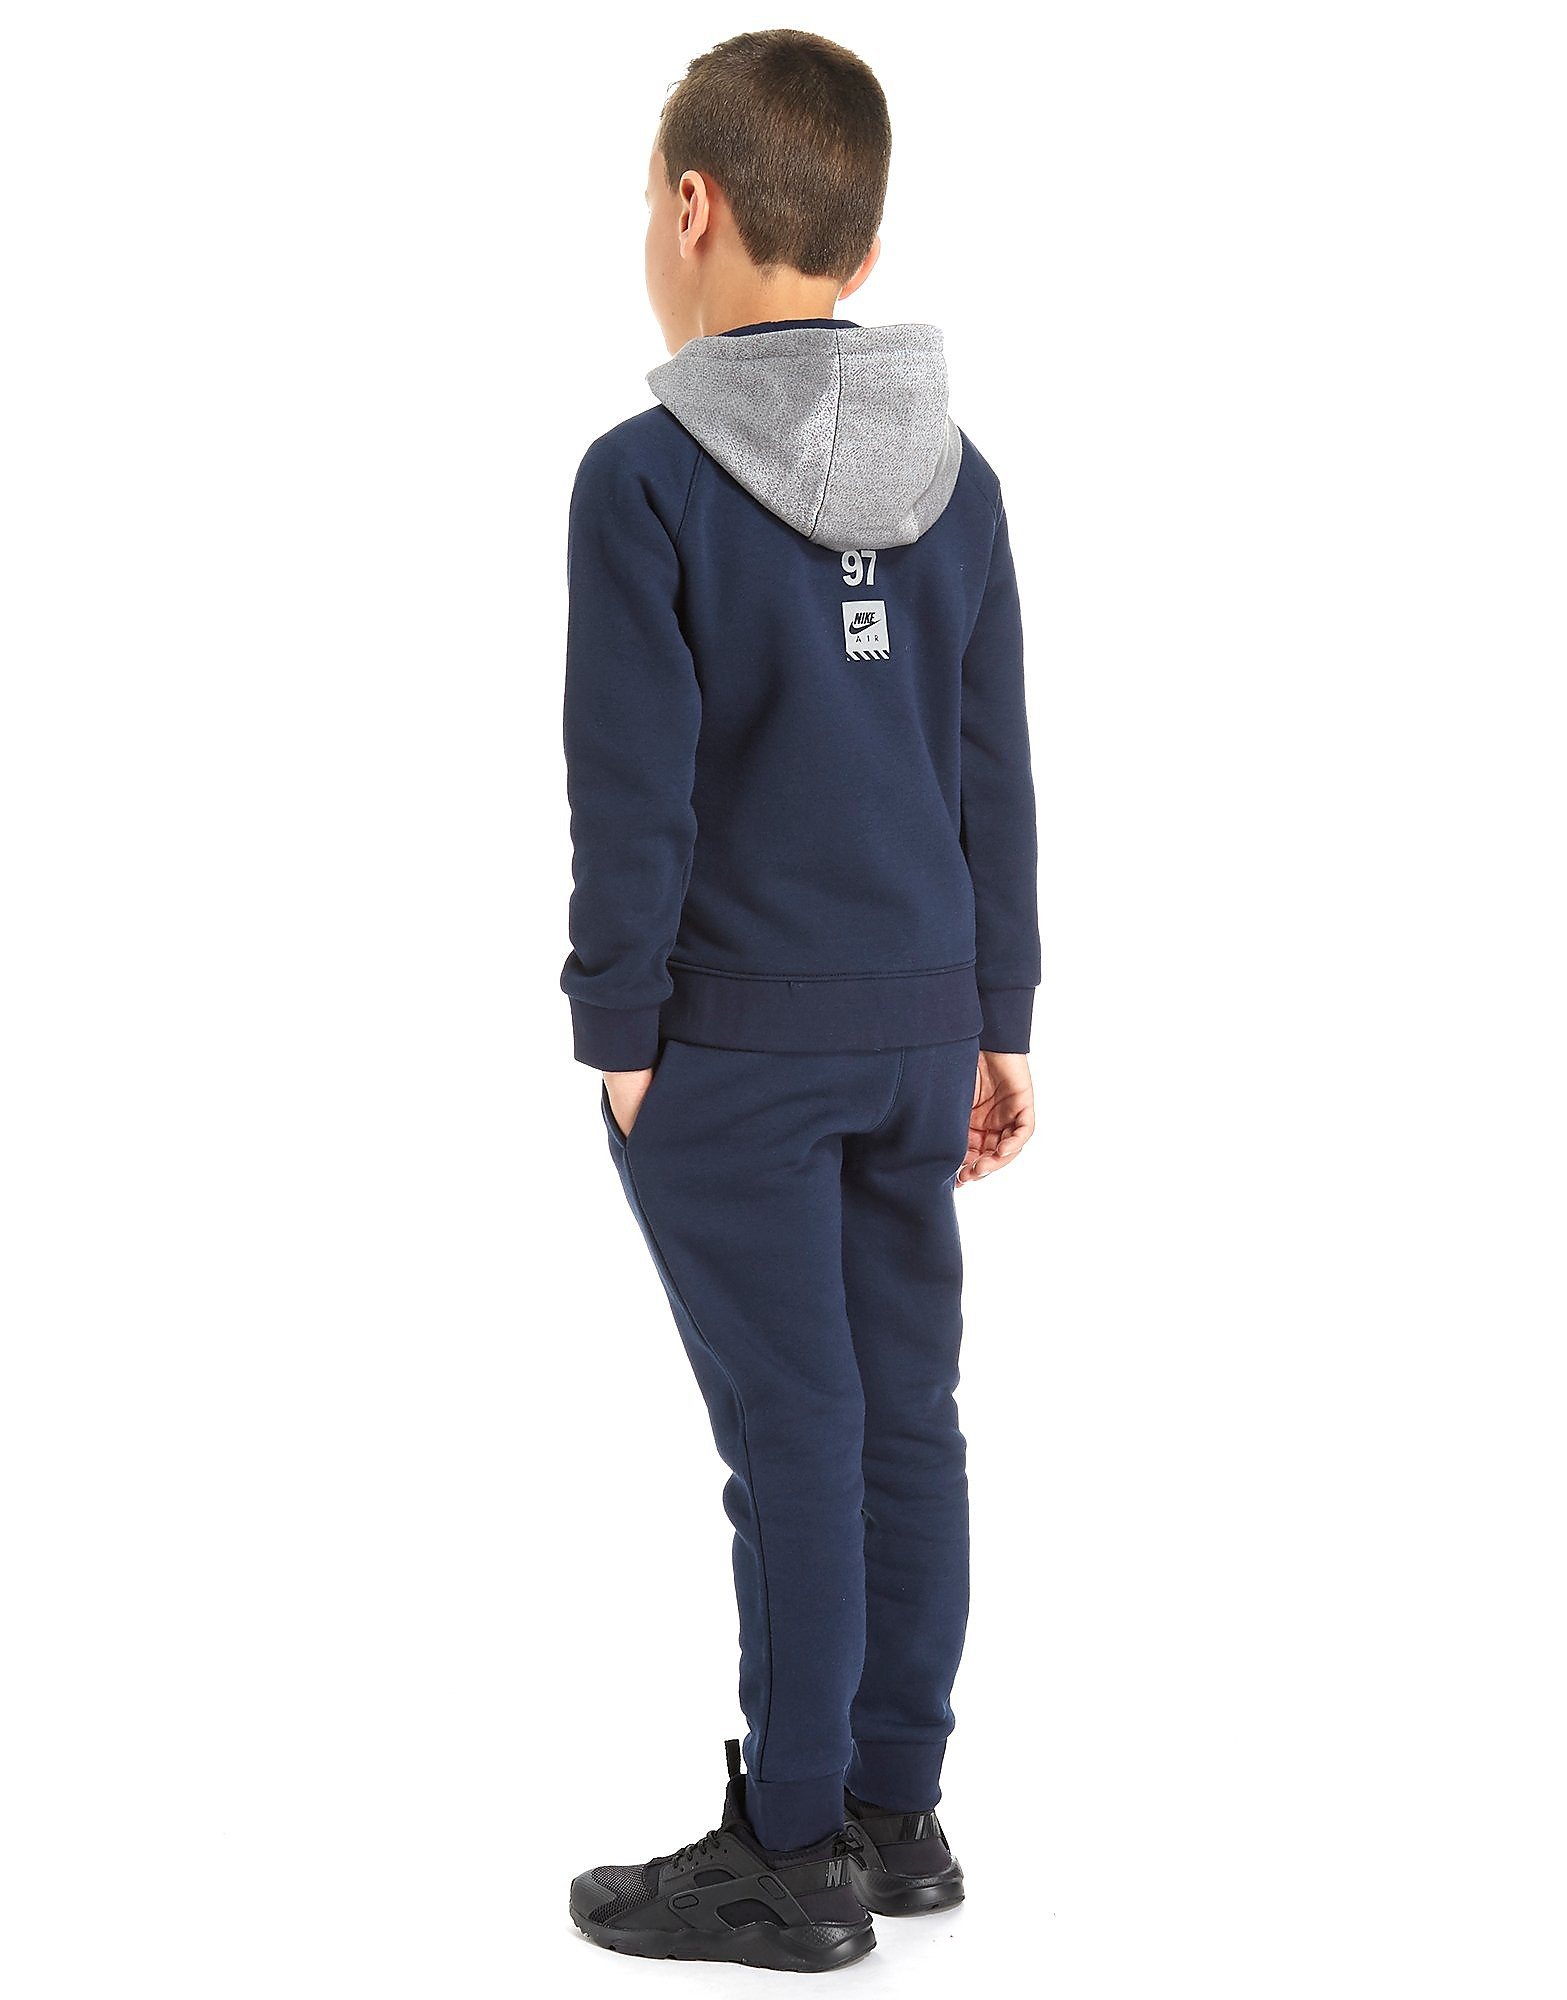 Nike Air Full Zip Suit voor baby's